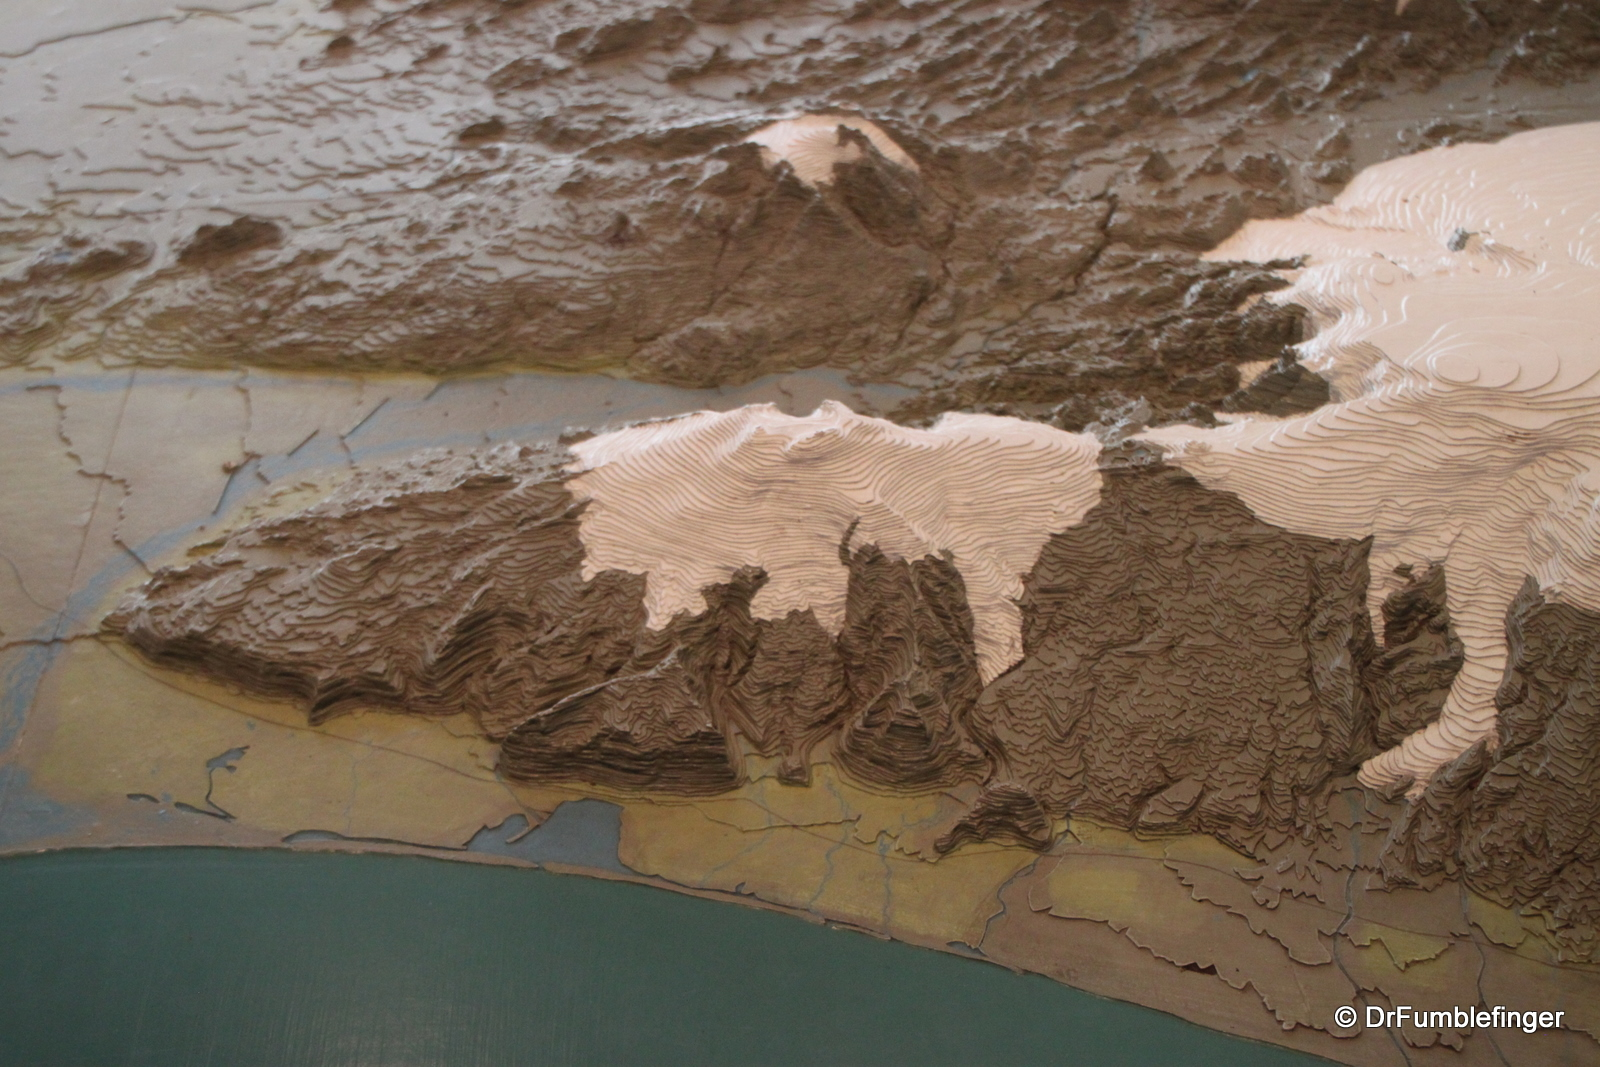 Relief Map of Iceland in City Hall